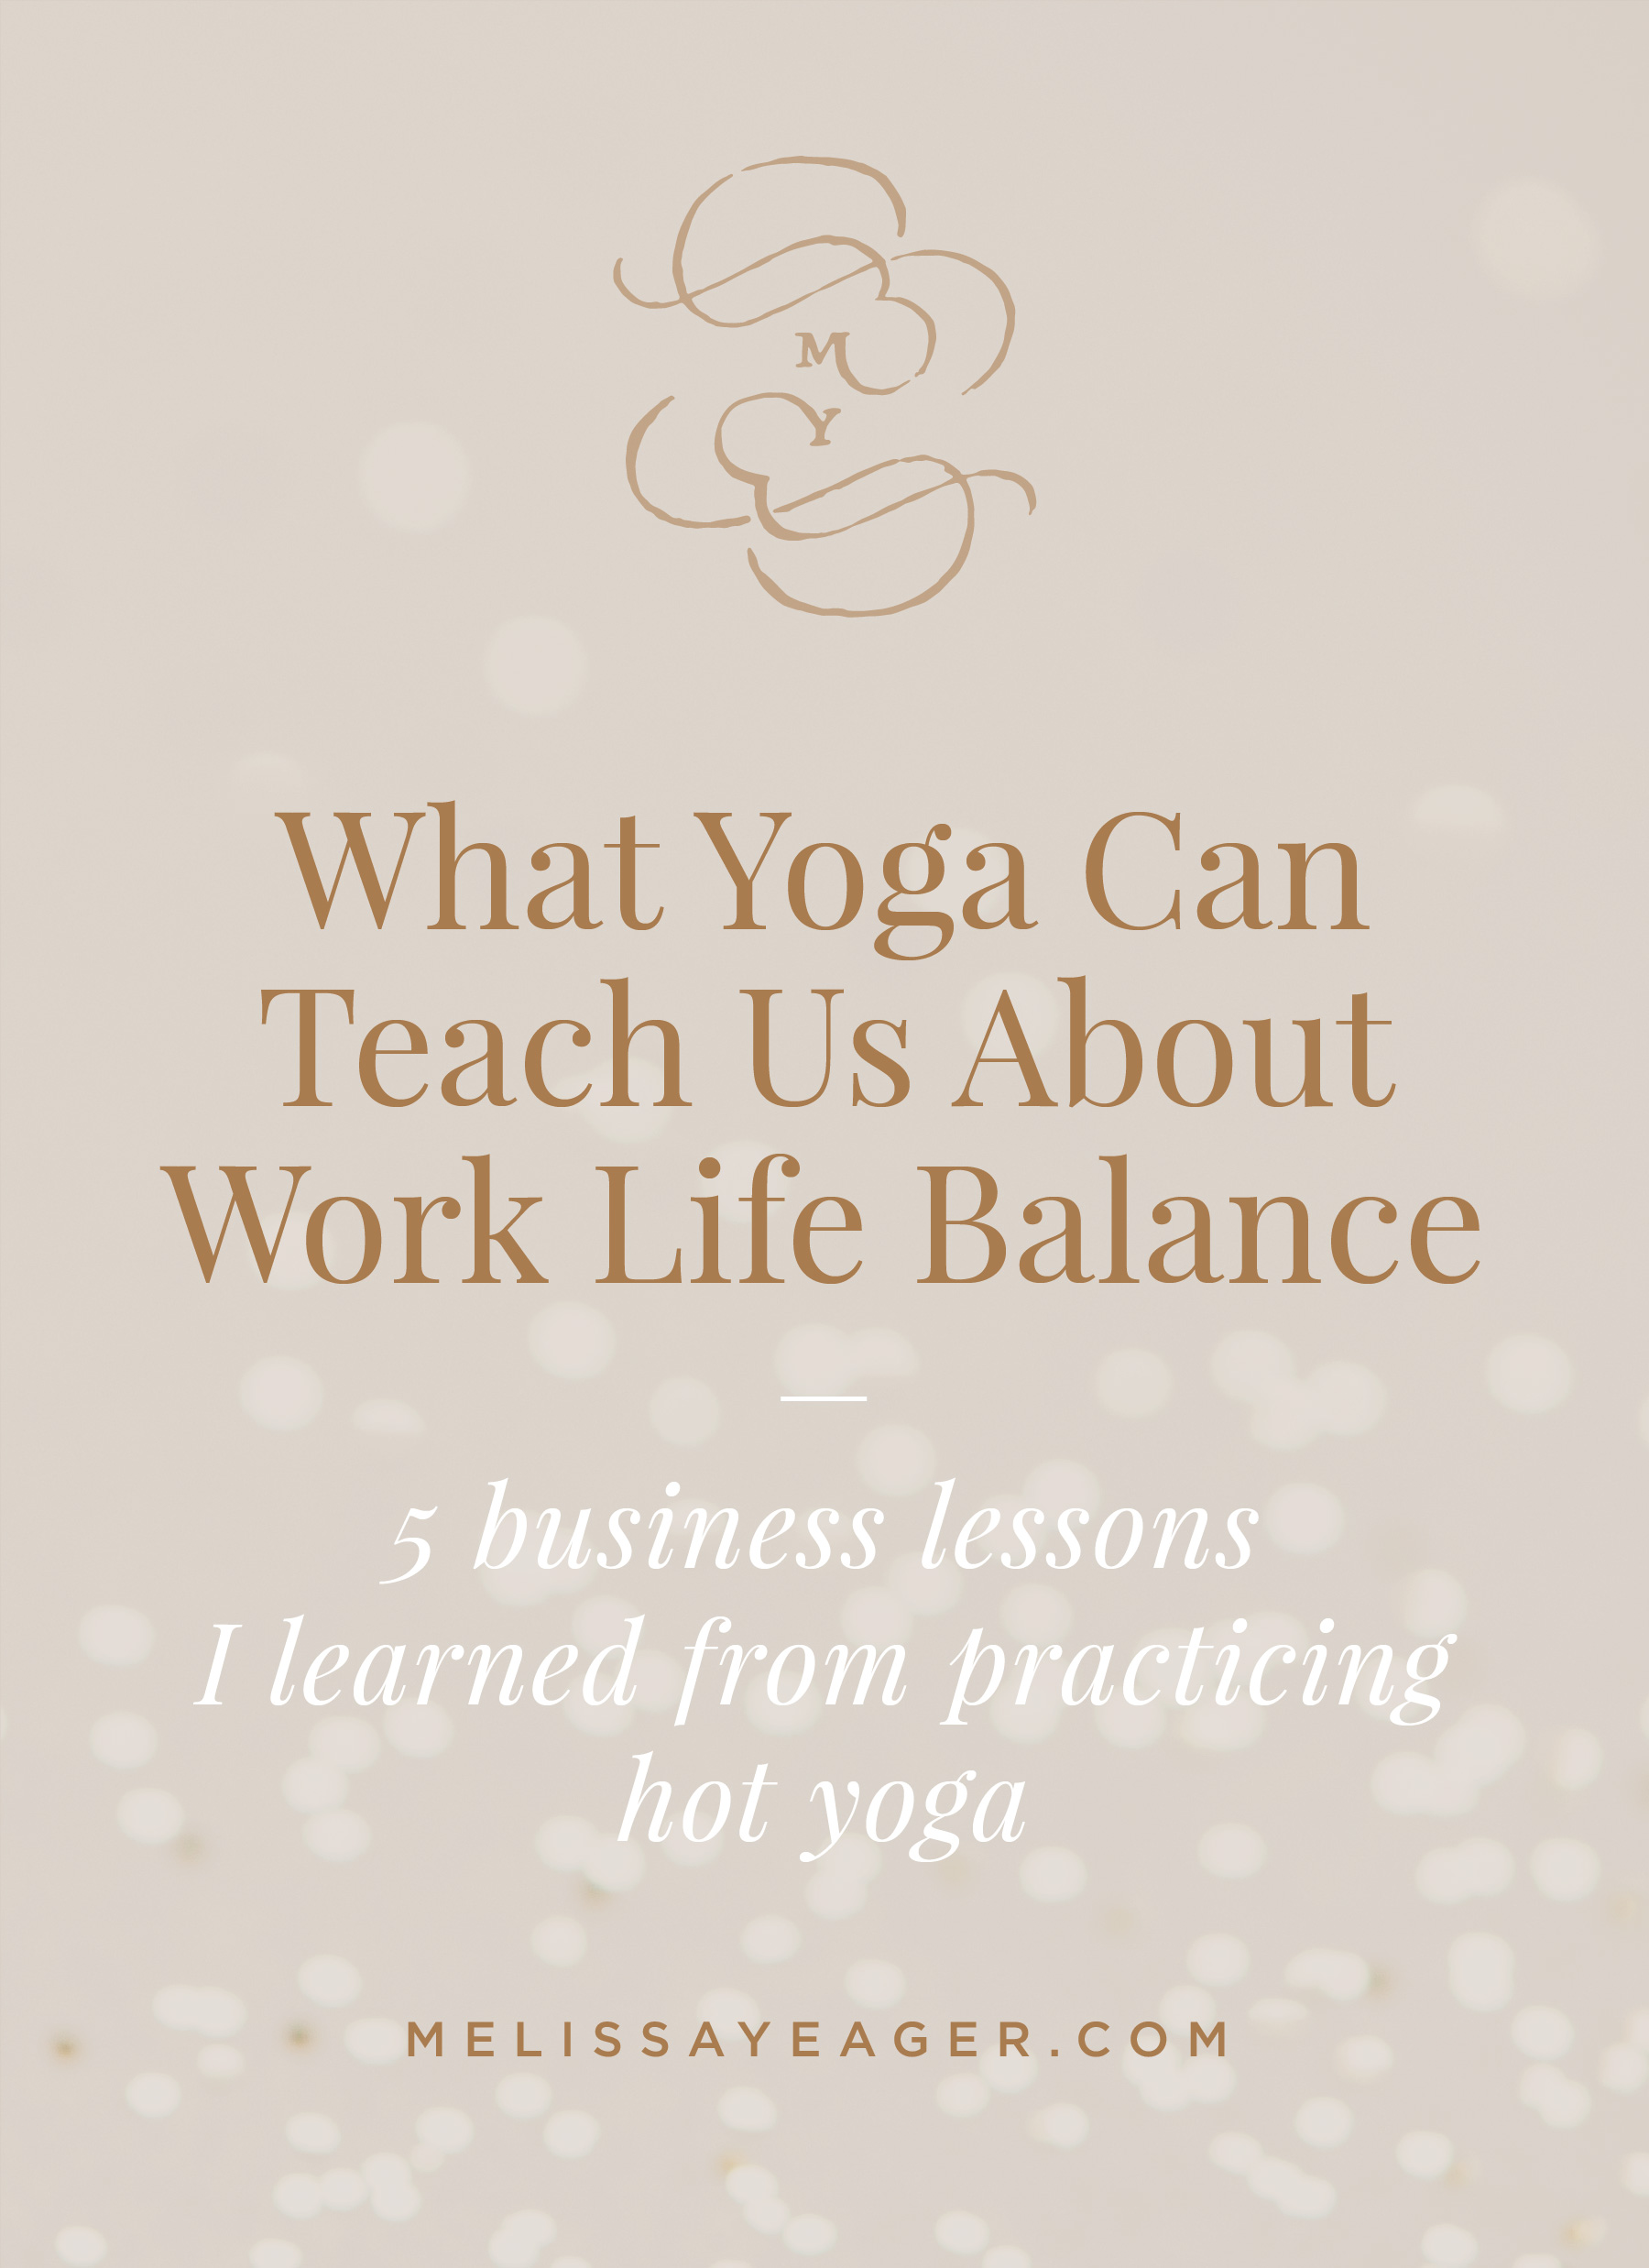 What Yoga Can Teach Us About Work Life Balance - 5 business lessons I learned from practicing hot yoga